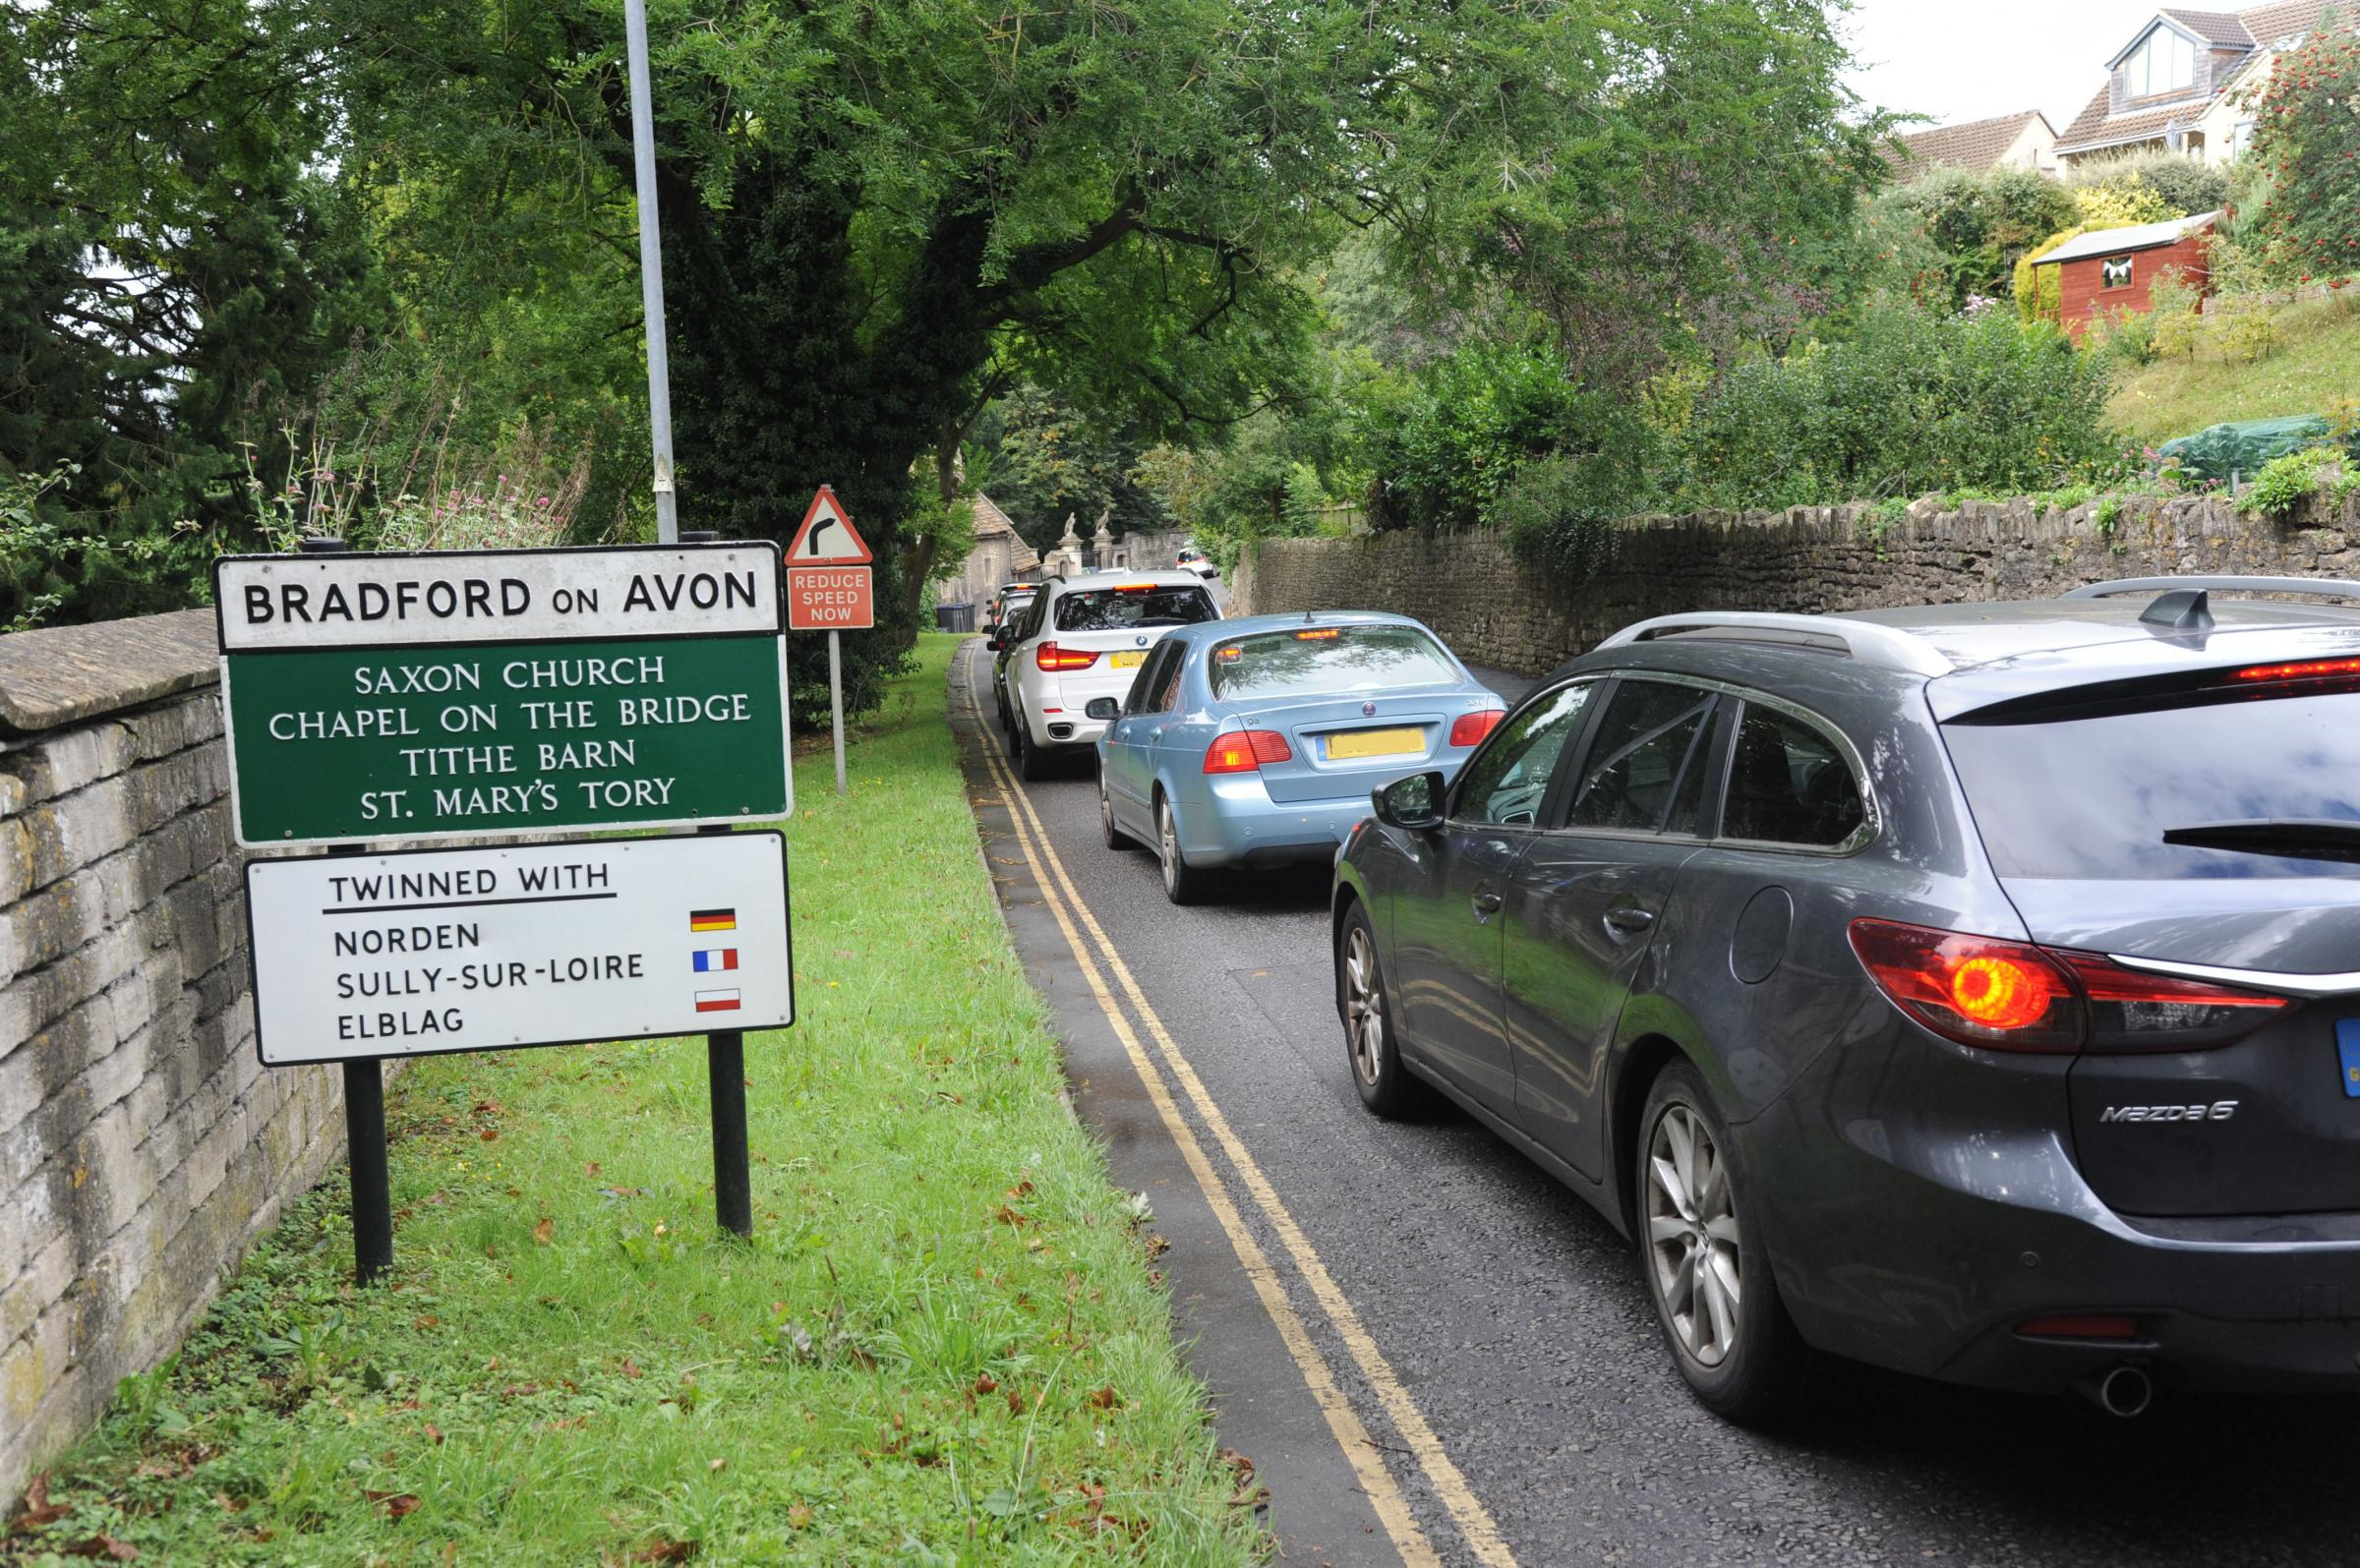 Petition calls for traffic lights and barriers to go from Town Bridge